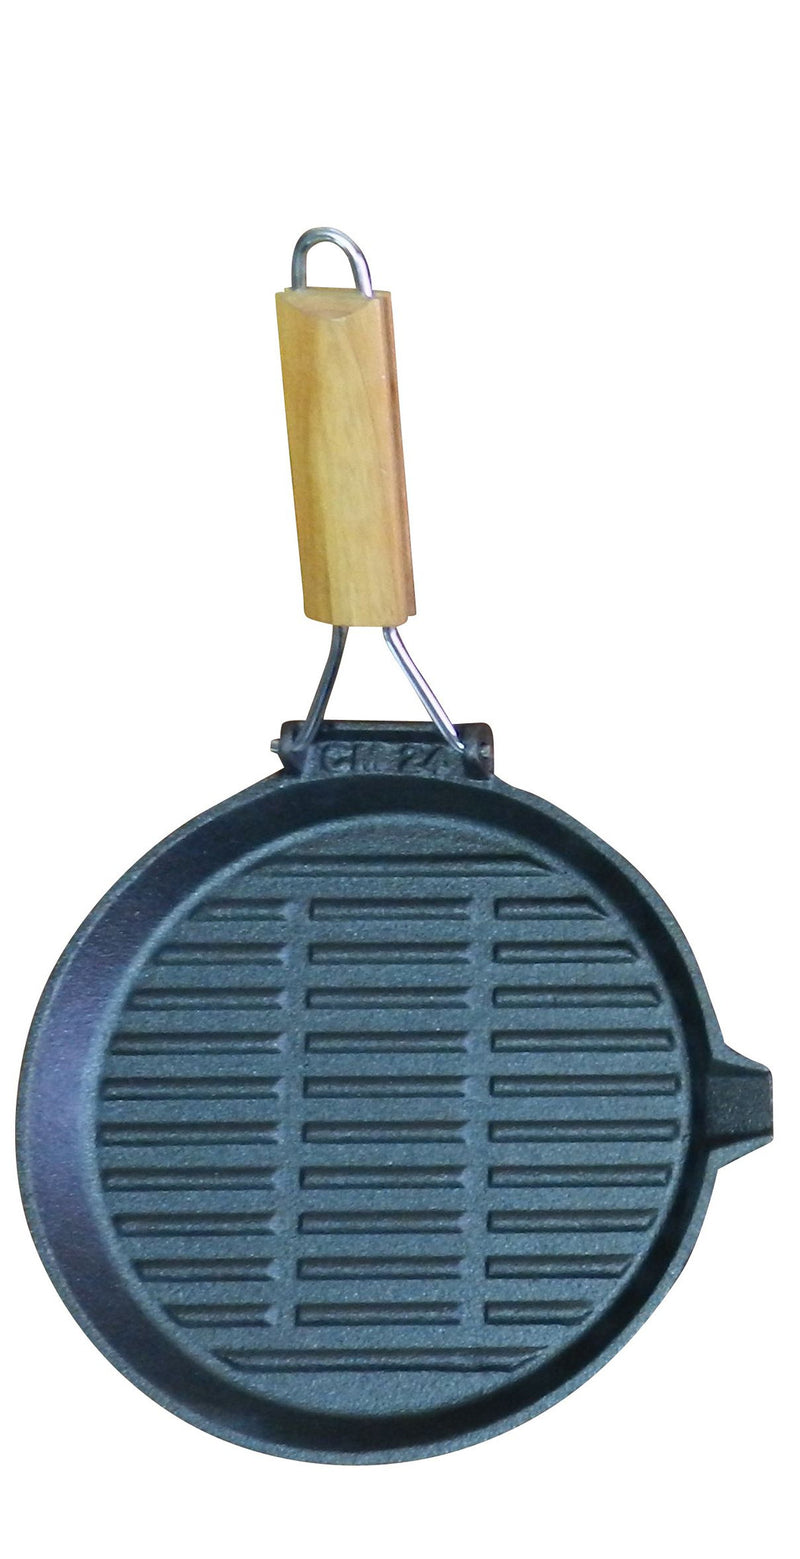 24cm Folding Handle Fry Pan